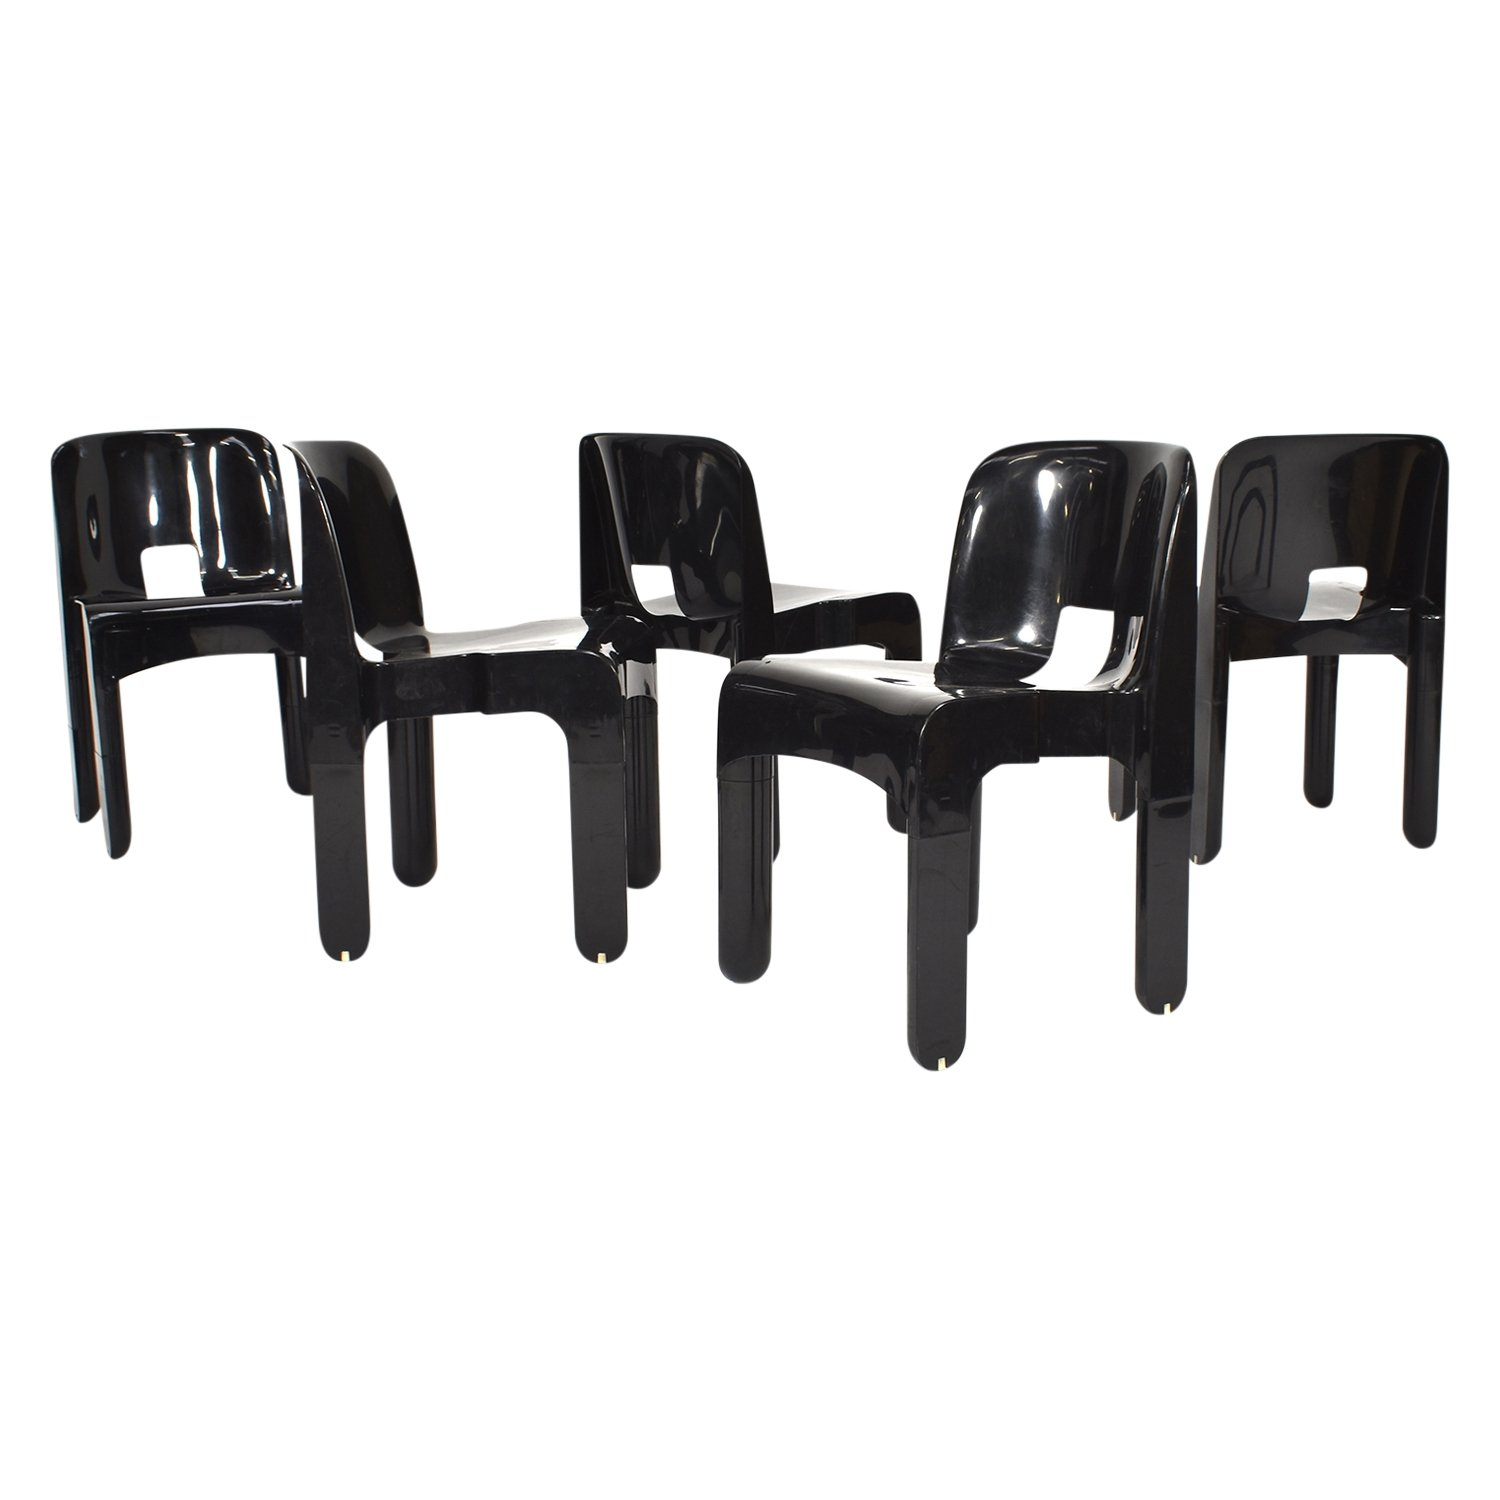 Fine Set Of 5 Joe Colombo Universale Plastic Chairs By Kartell Inzonedesignstudio Interior Chair Design Inzonedesignstudiocom